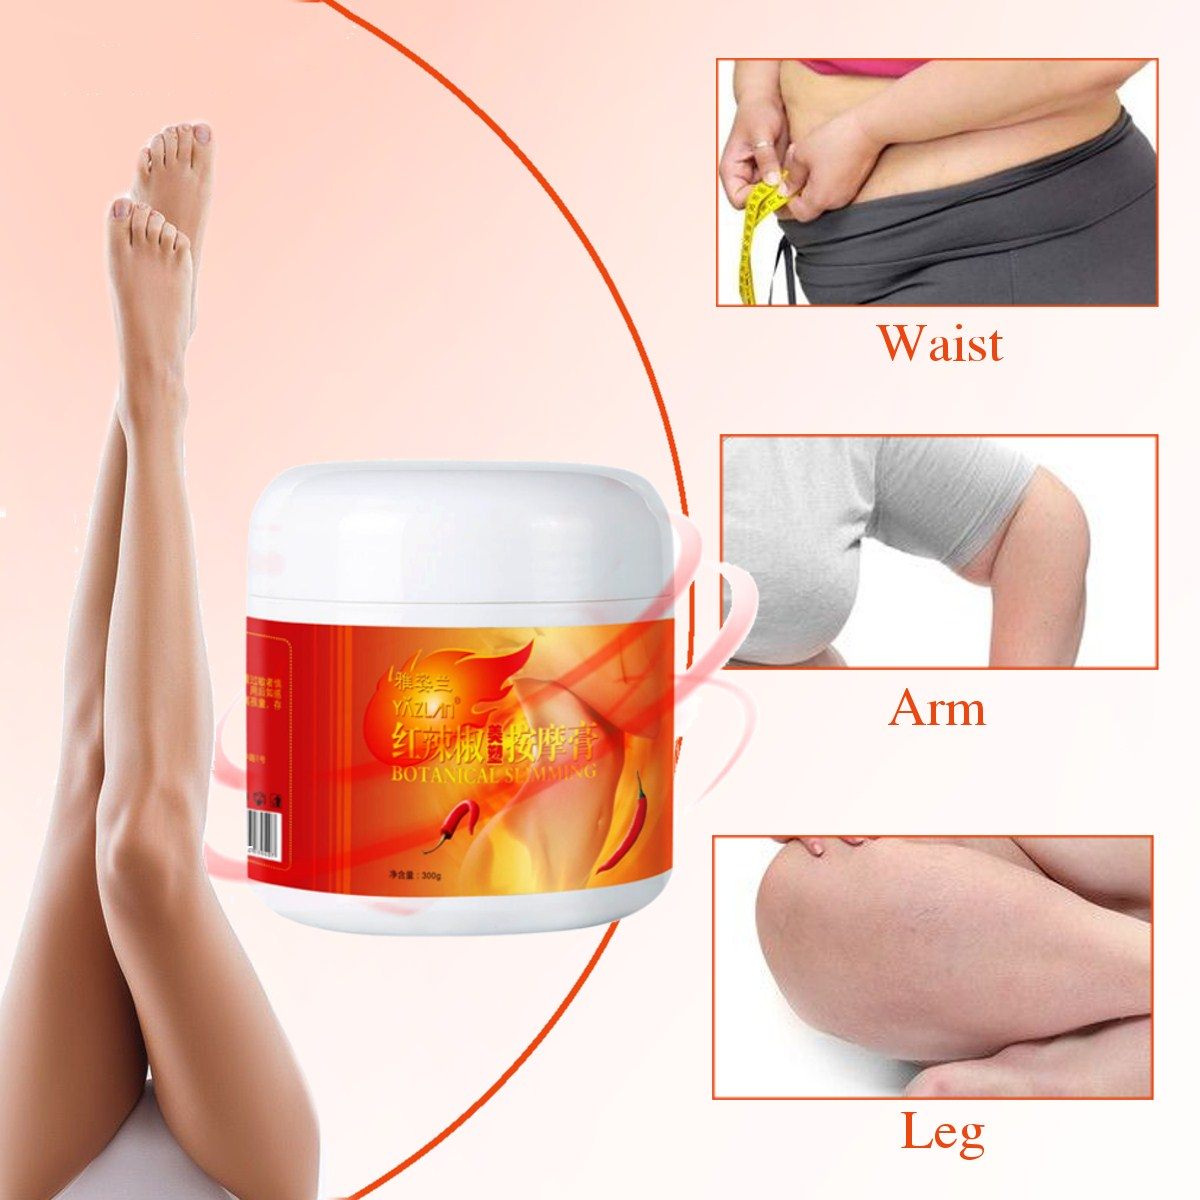 300g Weight Loss Products Hot Chilli Chili Slimming Creams Leg Body Waist Effective Anti Cellulite Fat Burning Gel